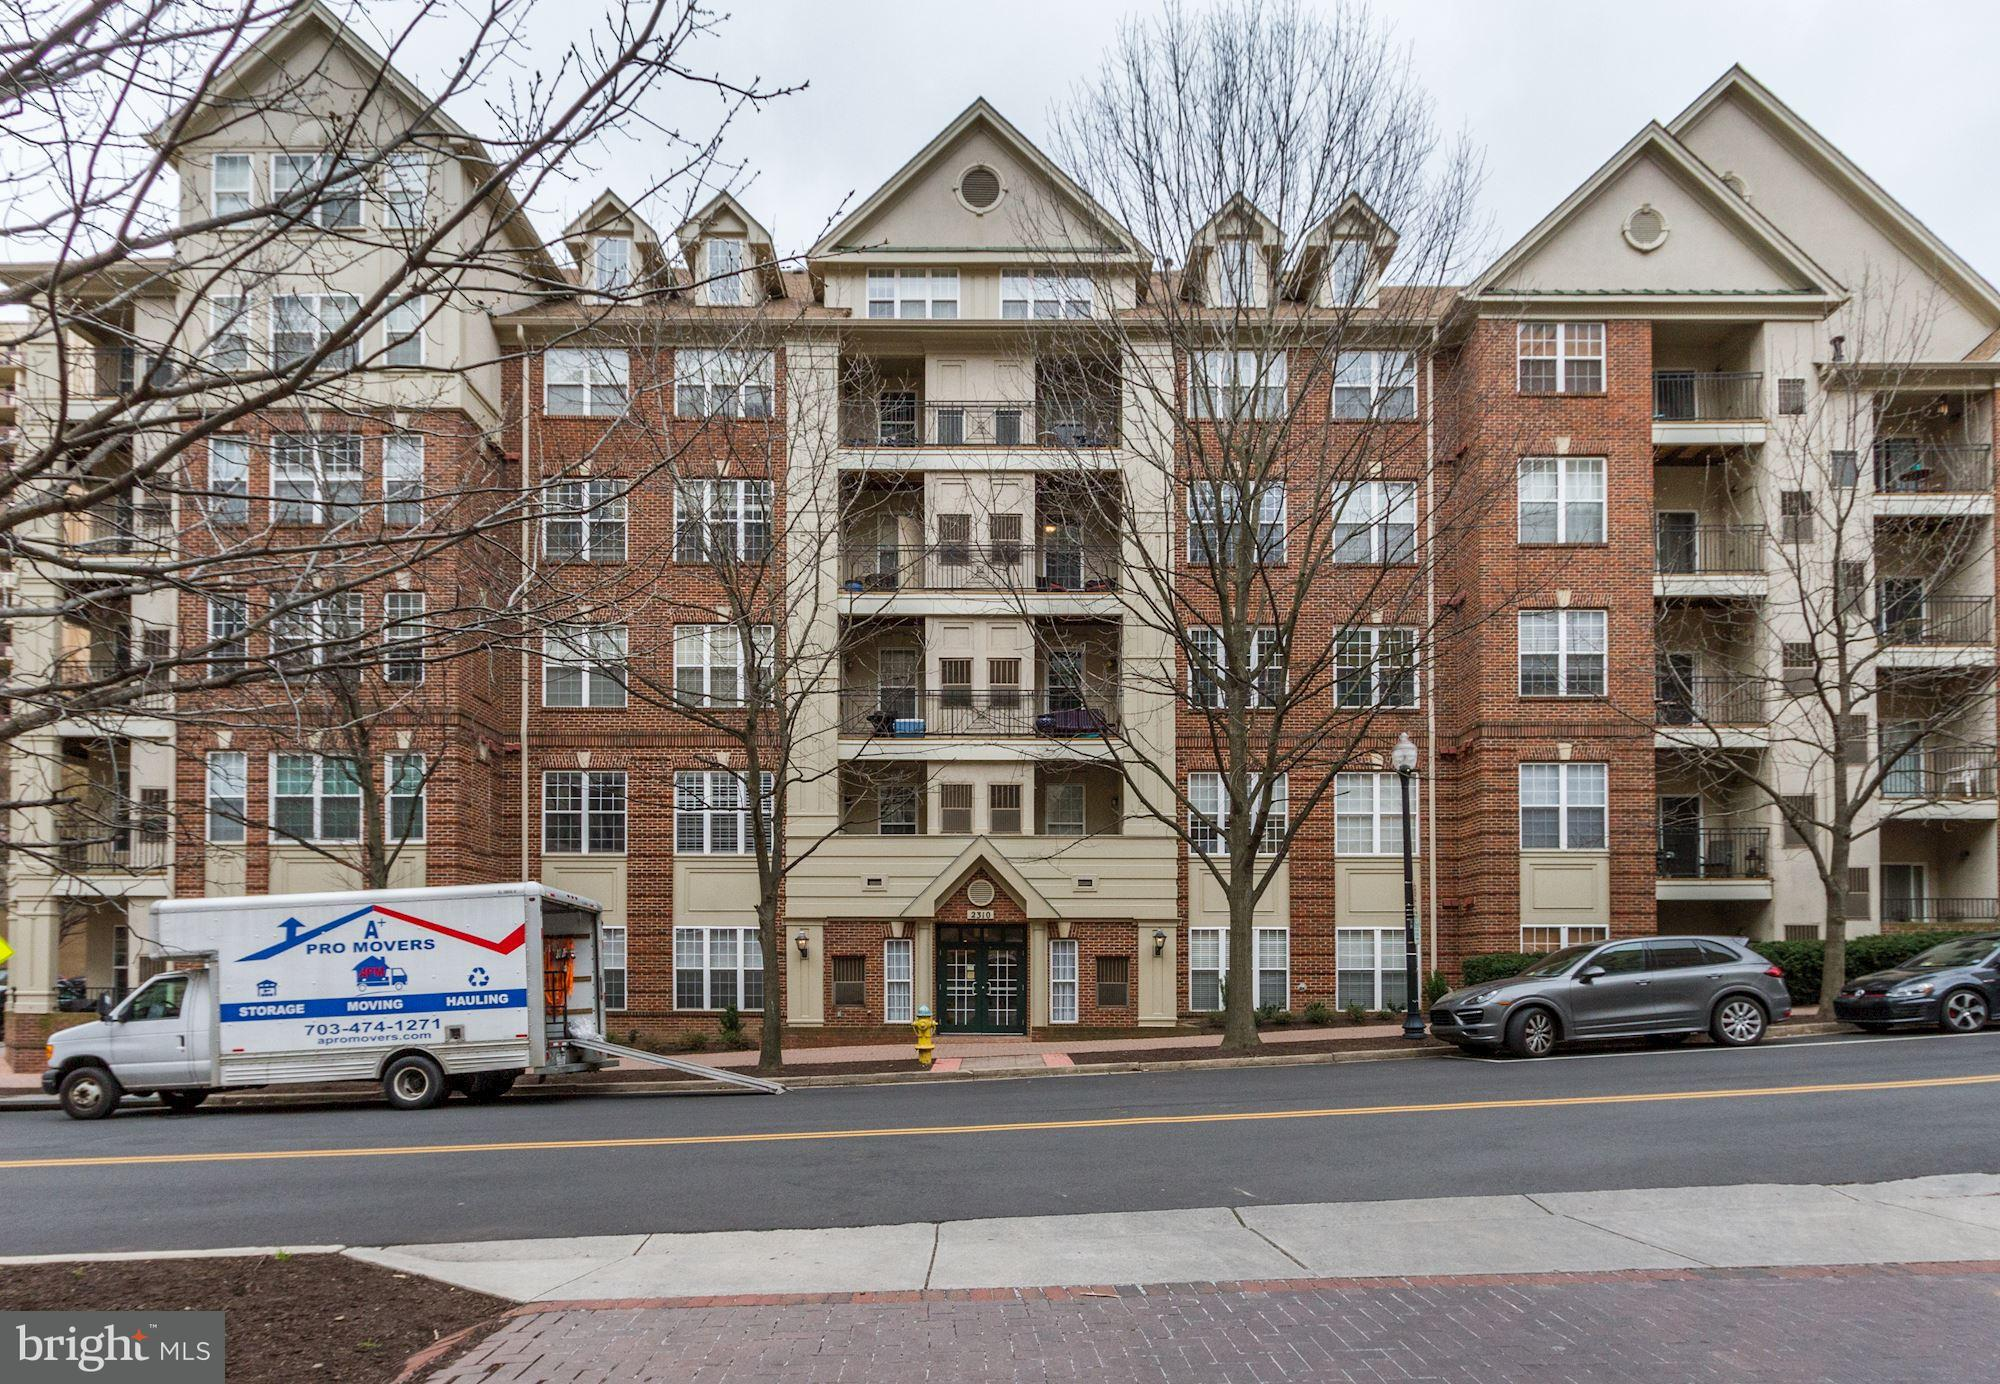 2310 14TH STREET N, #108, Arlington, VA 22201